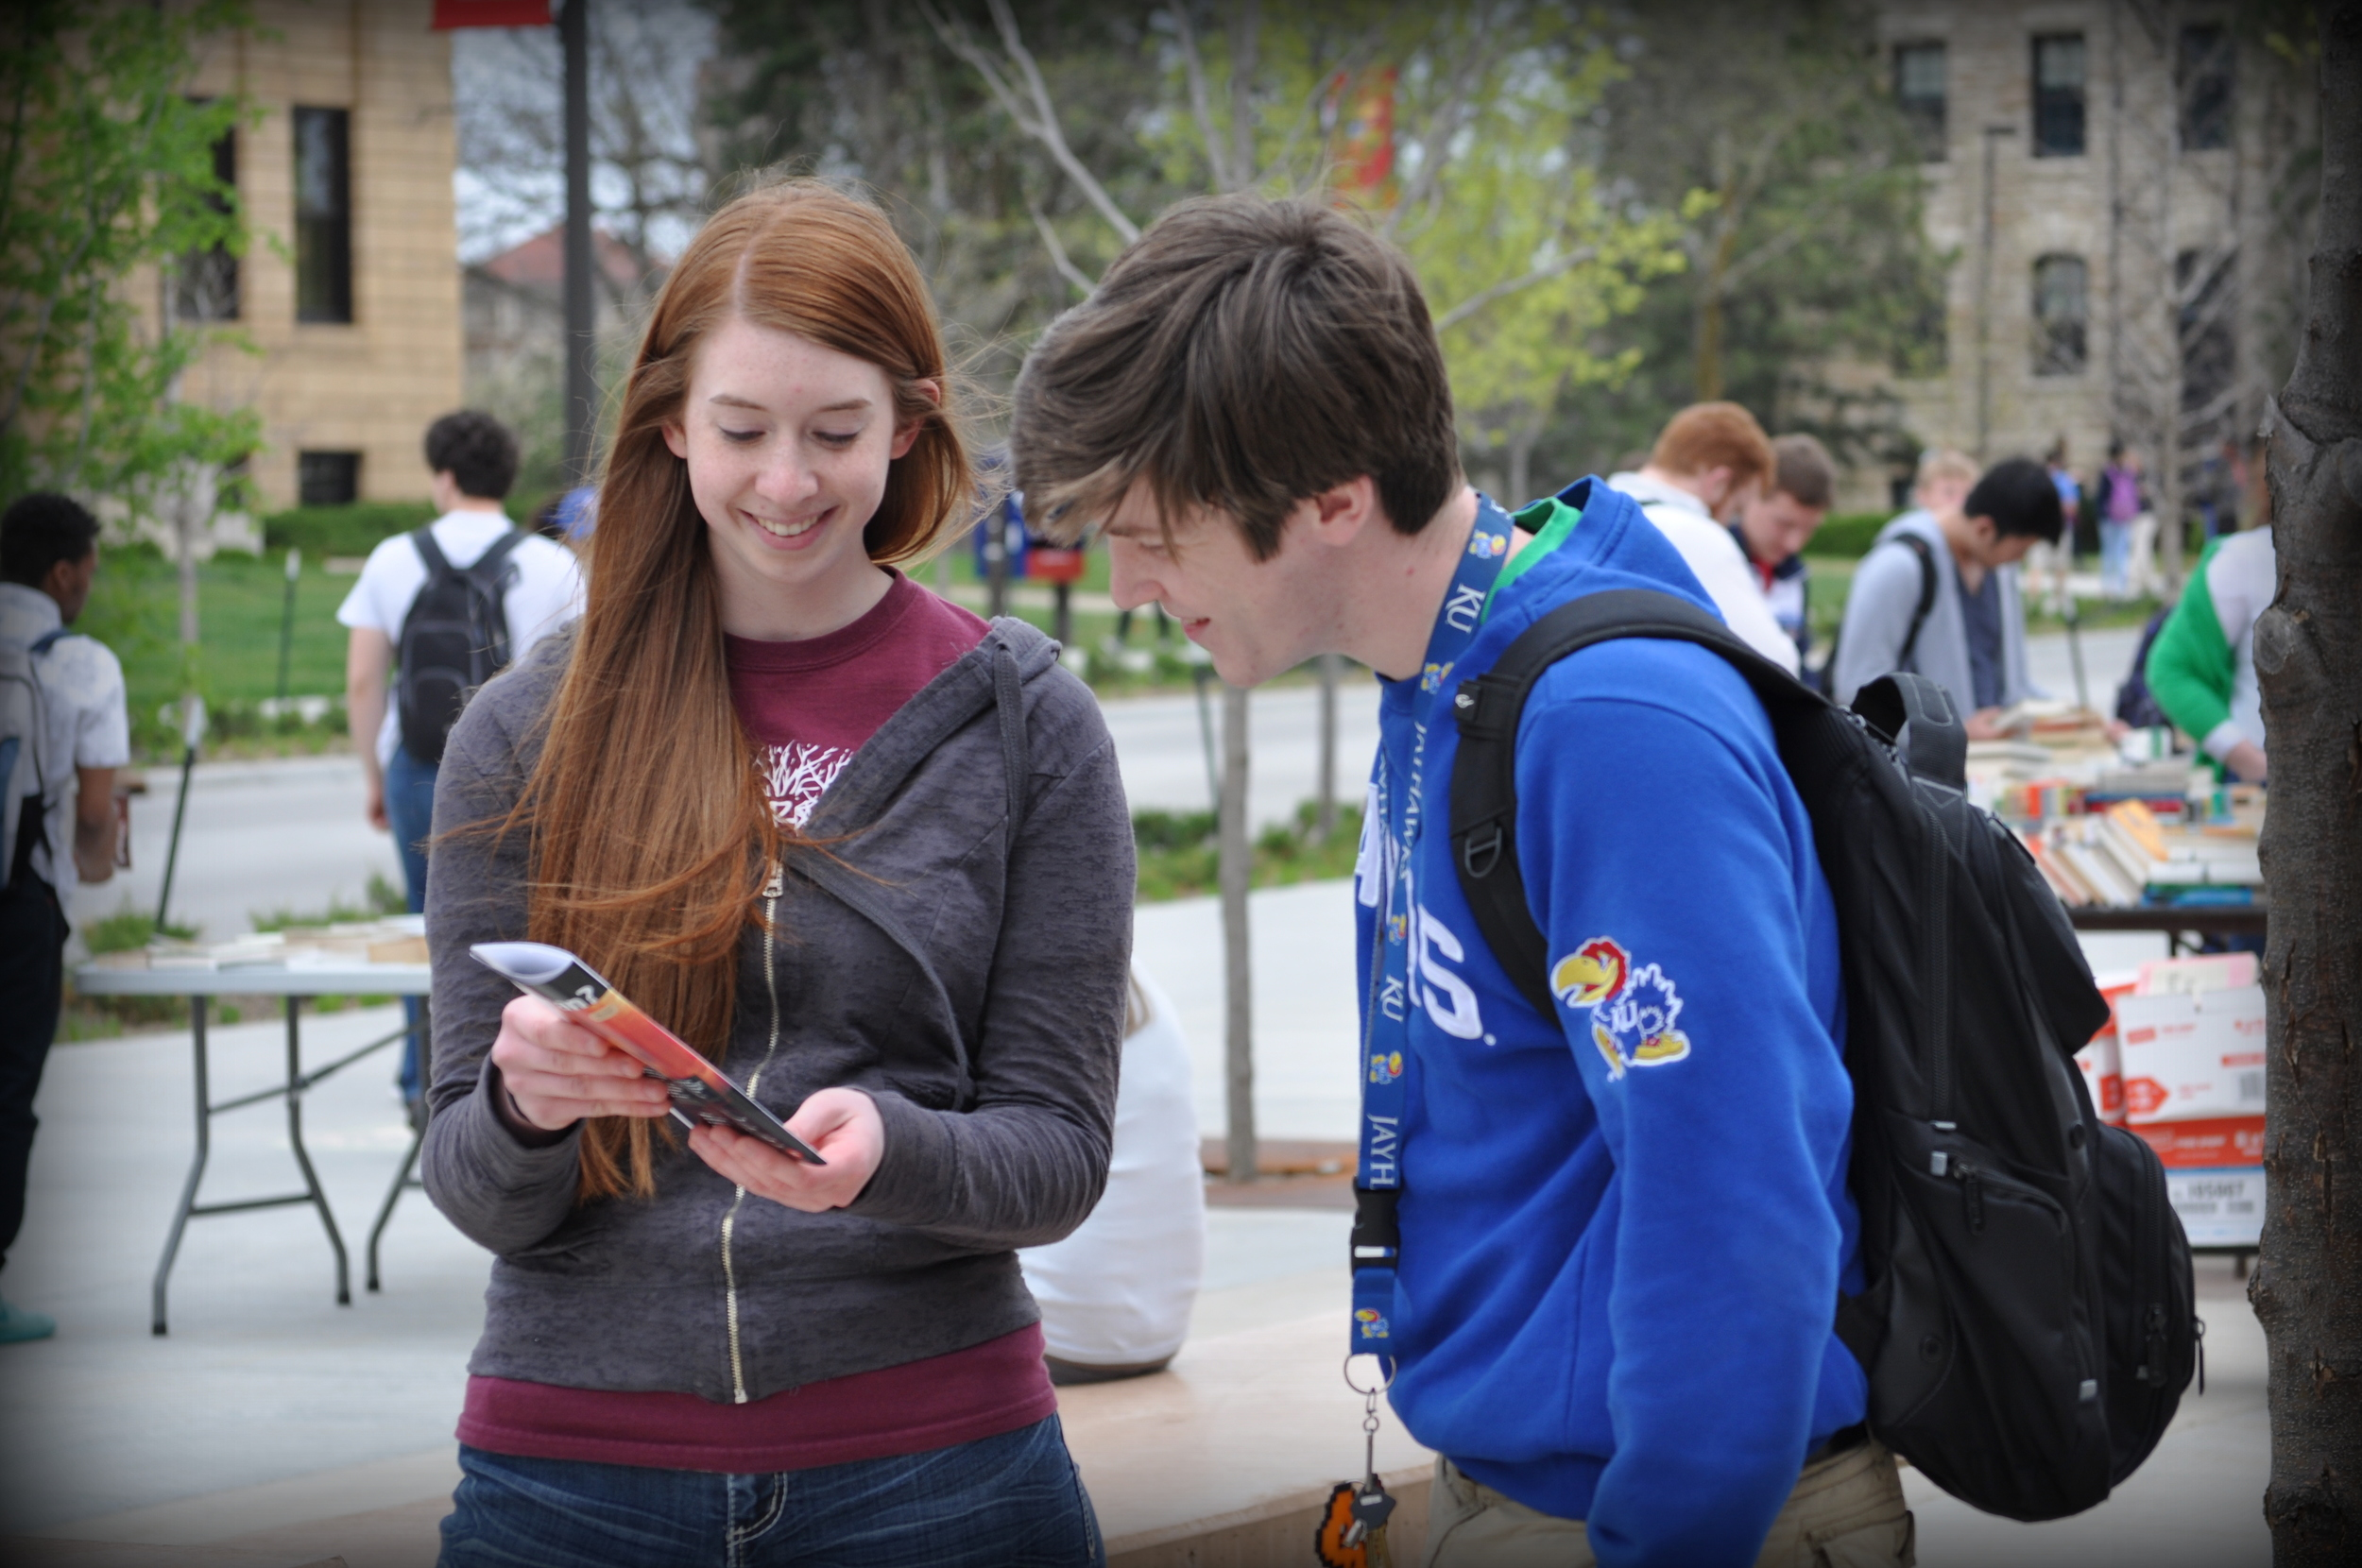 During her sophomore year of college, Laura Haschke (above) came on a mission trip with Justice For All to participate in seminars and outreach events near the University of Kansas (KU). She is shown here sharing the JFA Exhibit Brochure with a KU student.